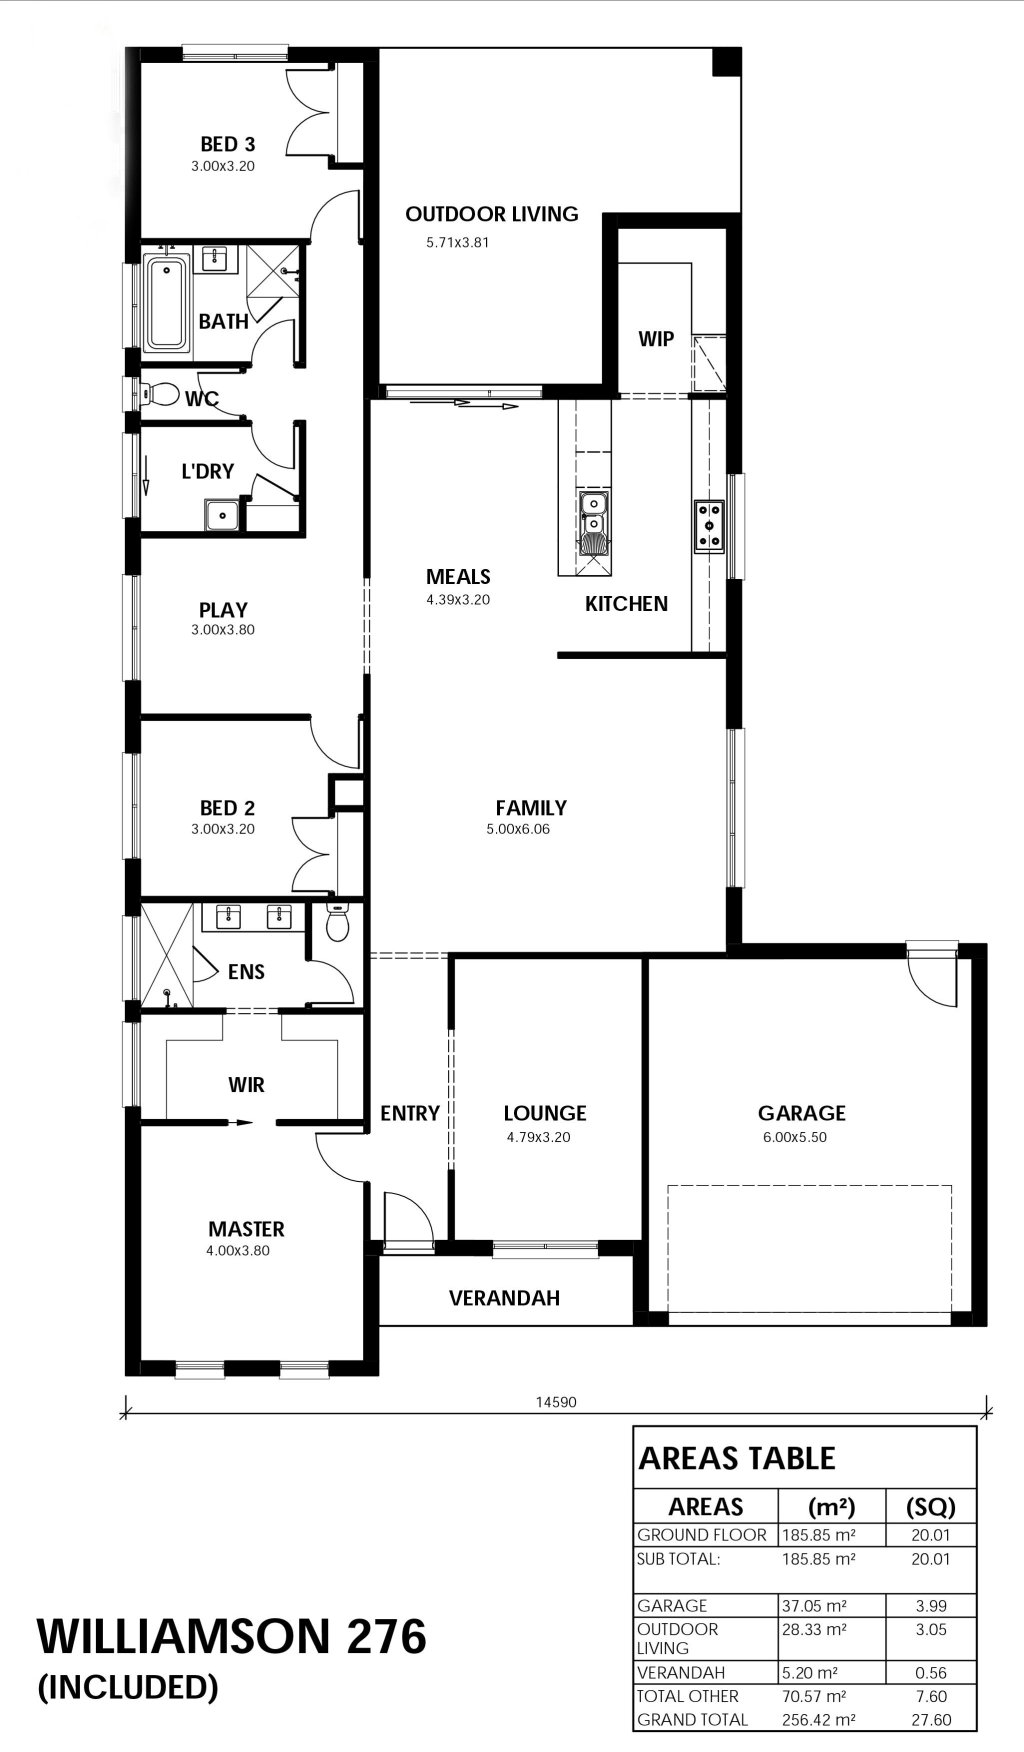 Williamson 276 Floorplan